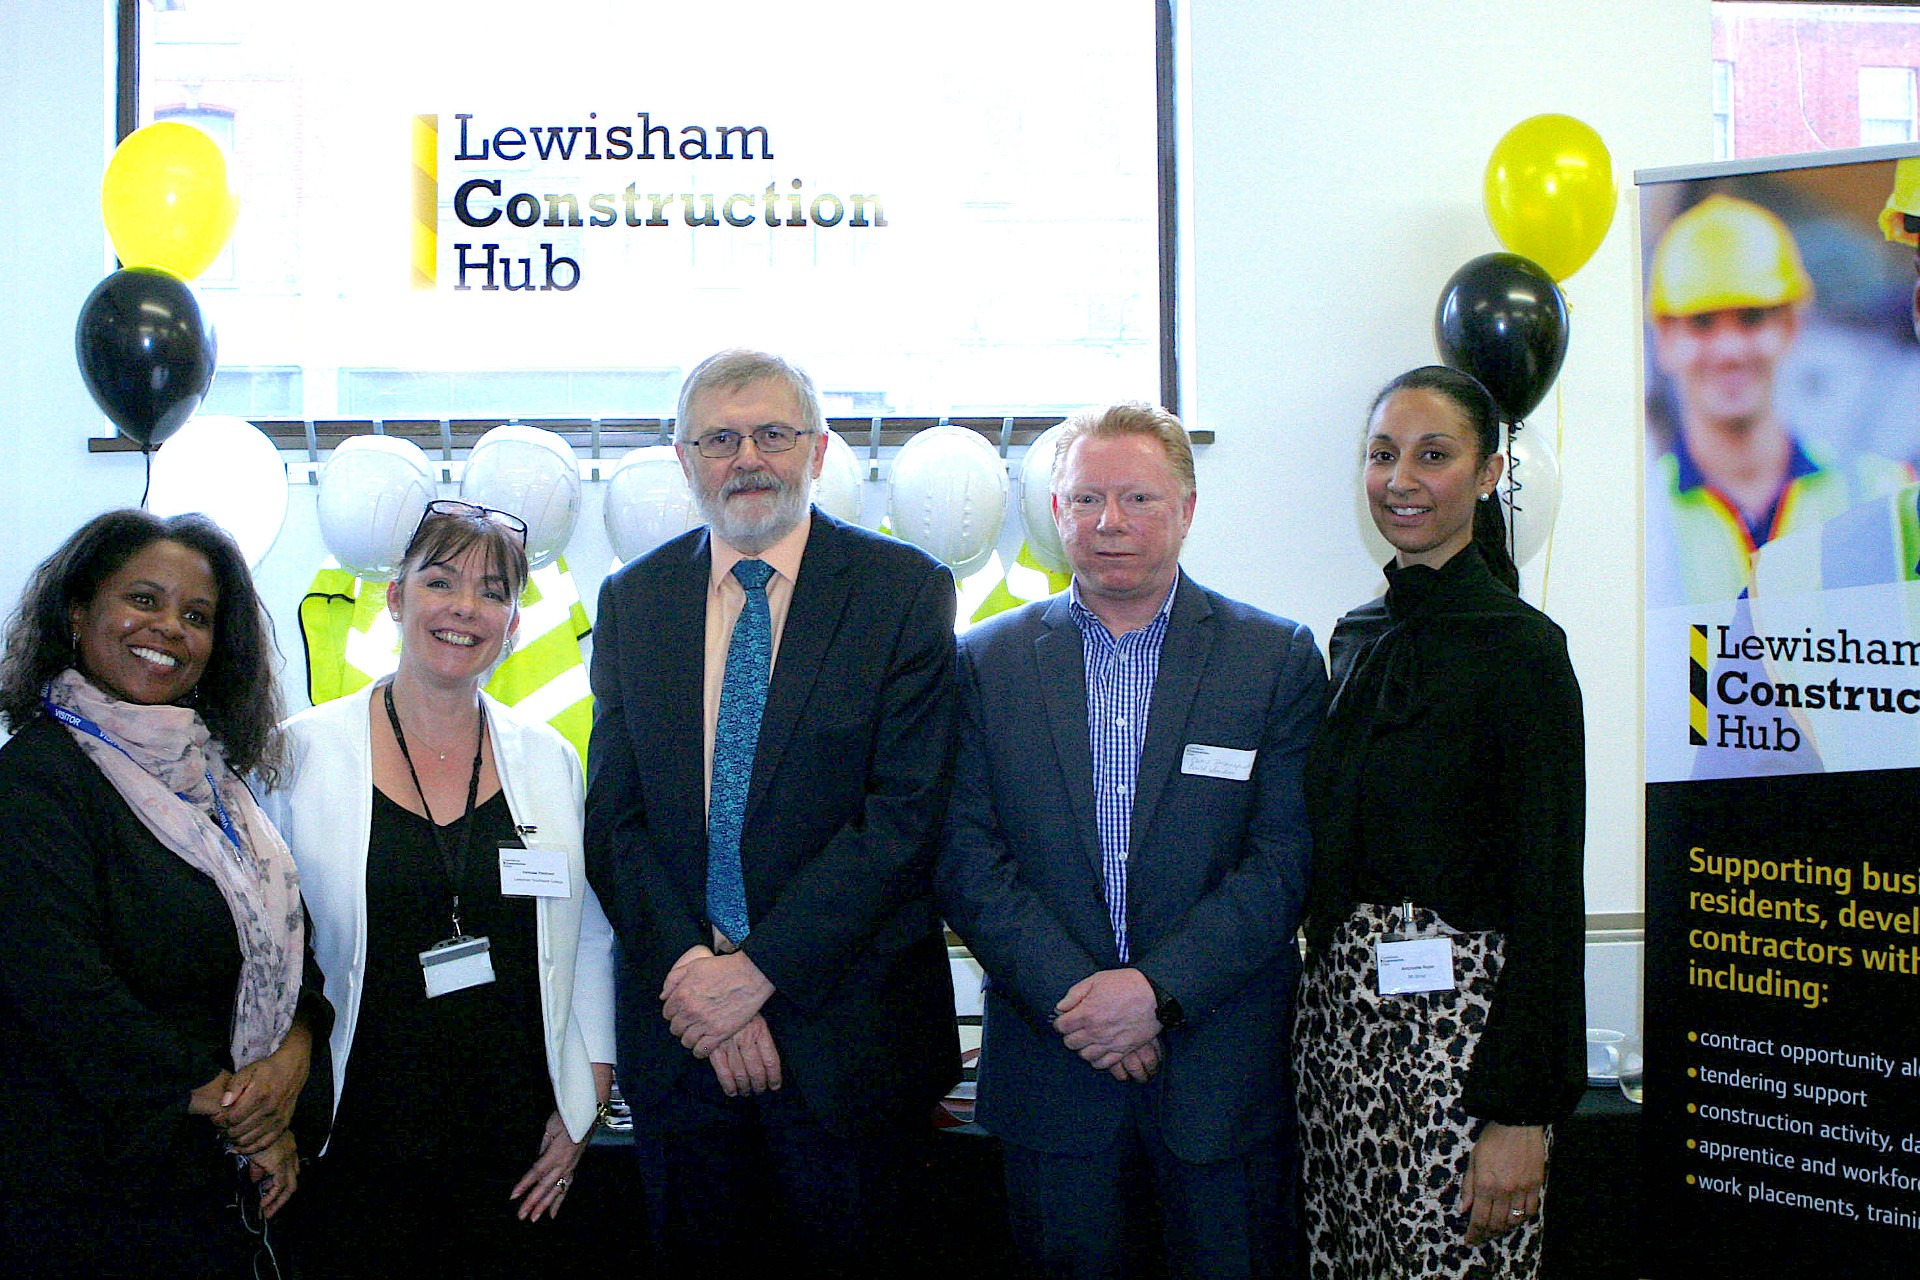 Lewisham Construction Hub officially opens